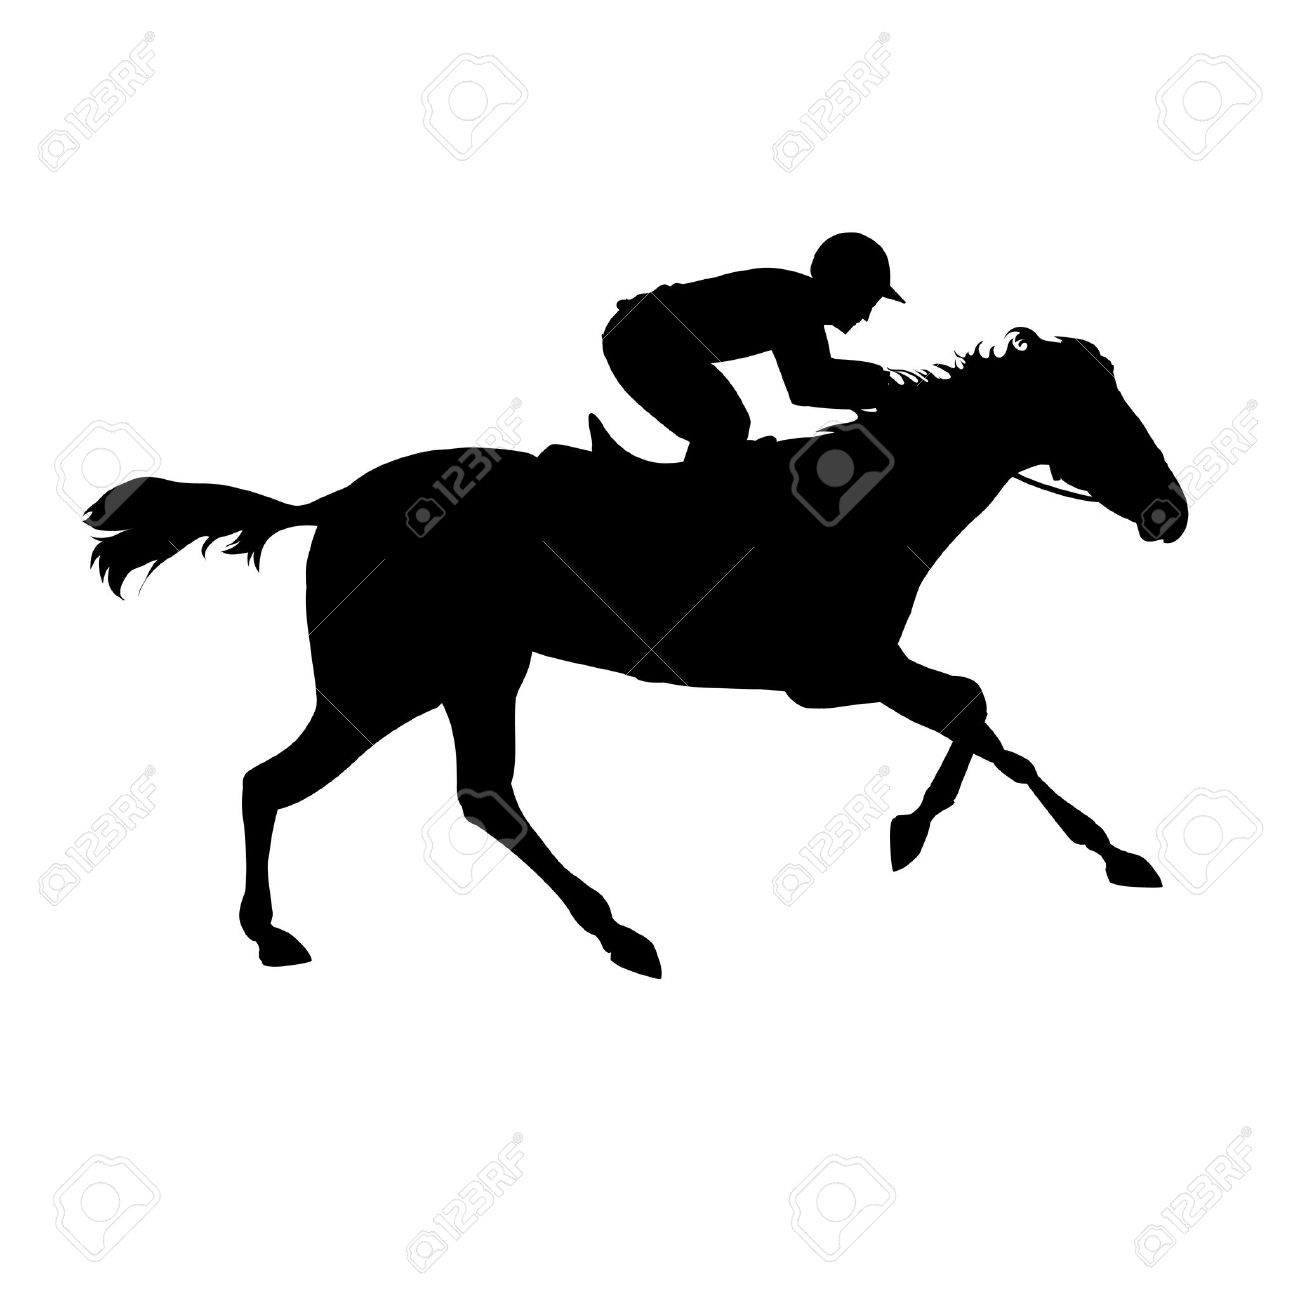 Horse Race Equestrian Sport Silhouette Of Racing With Jockey On Isolated Background